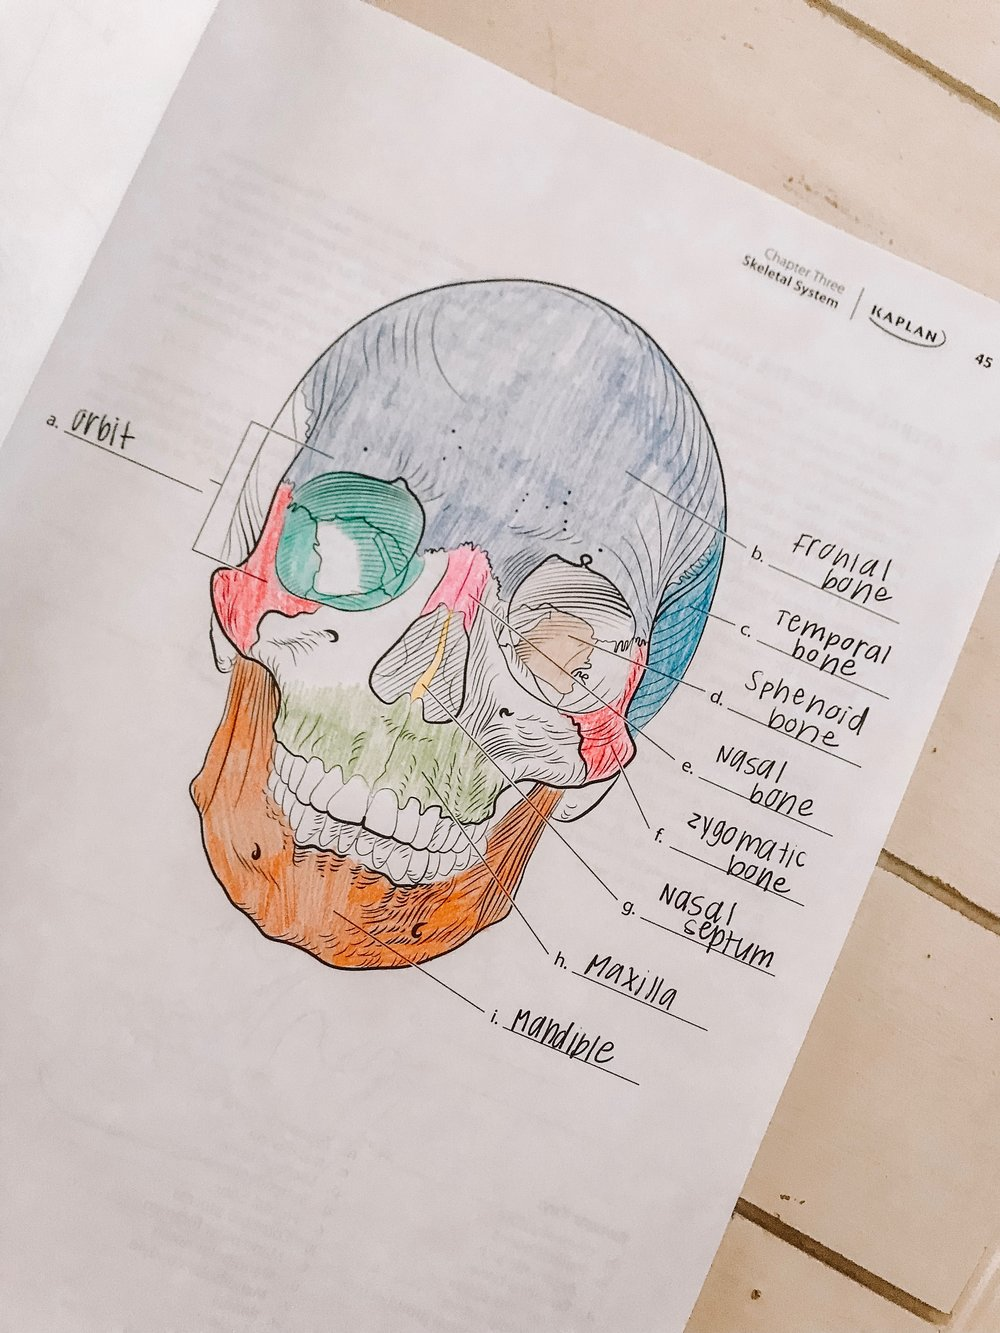 Anatomy Coloring Book Page.jpg